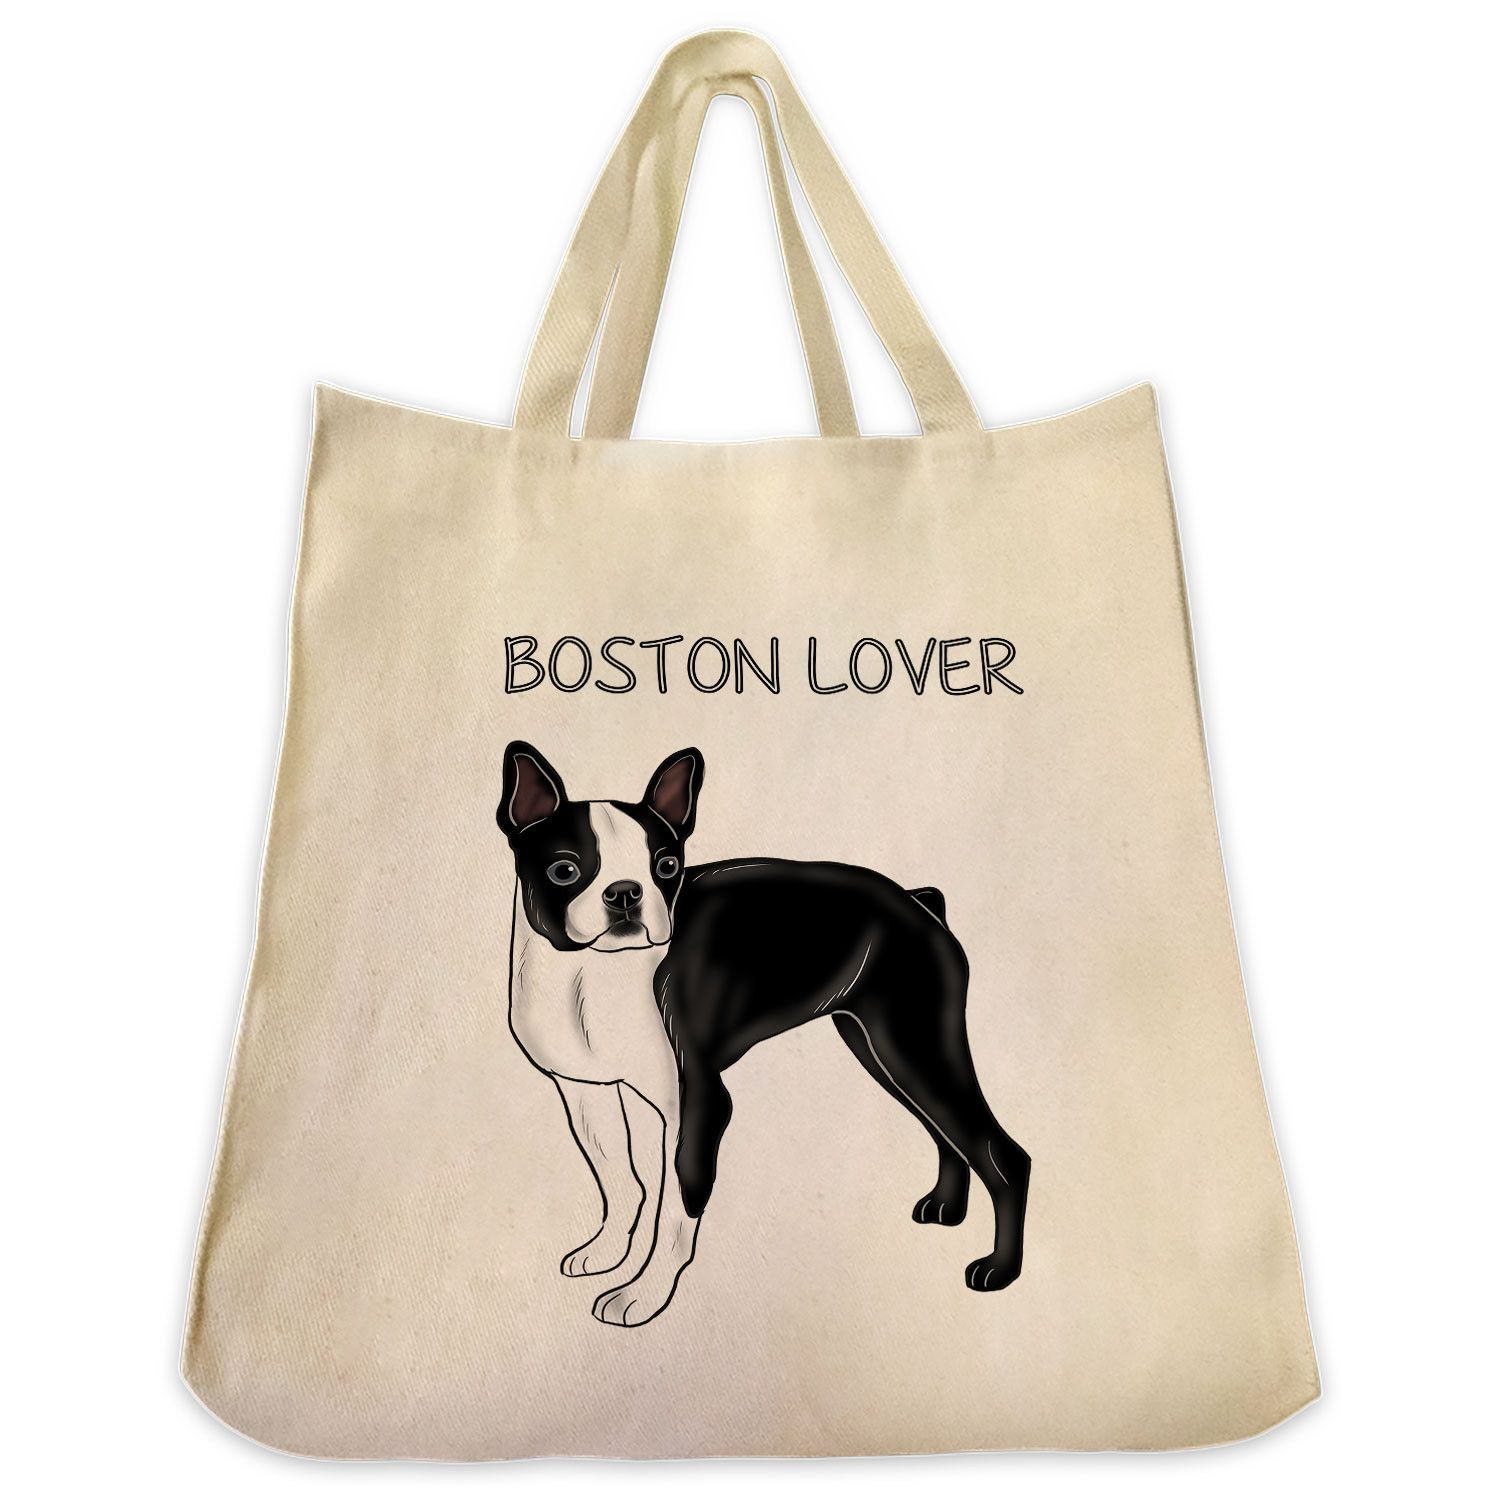 "Black Boston Terrier Color Full Body ""Boston Lover"" Design Extra Large Eco Friendly Reusable Cotton Canvas Tote Bag"